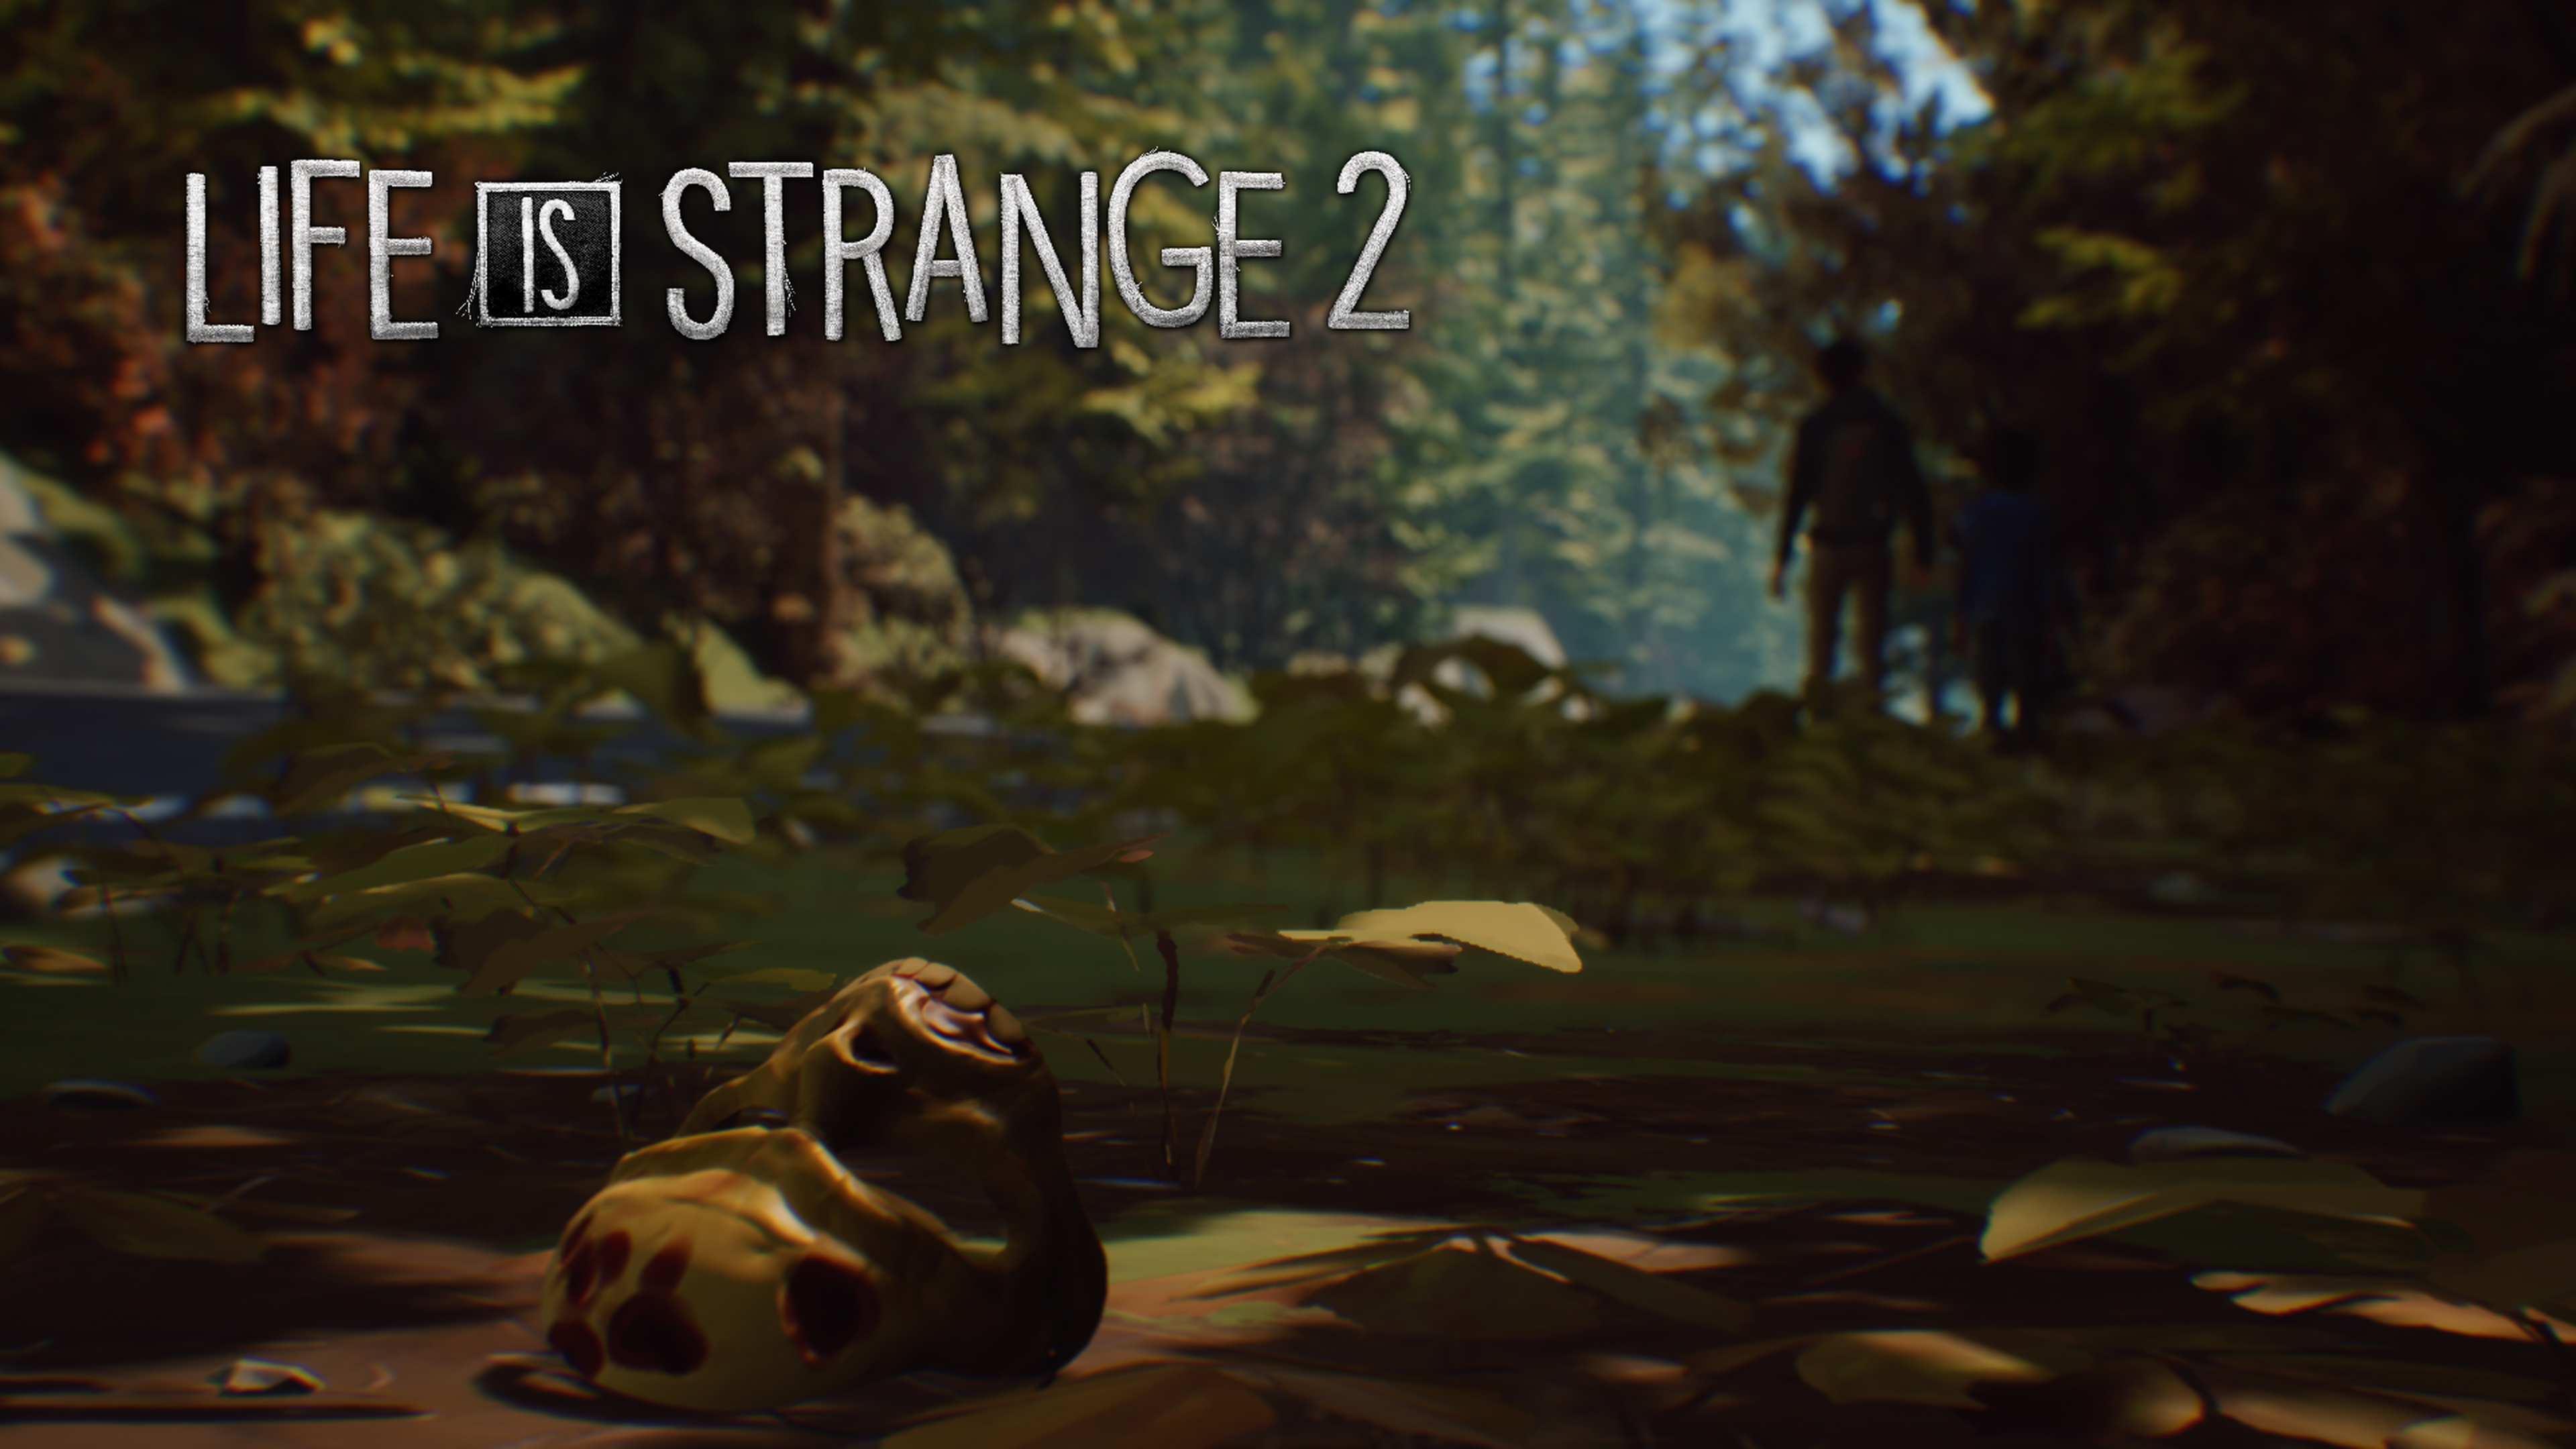 Life is Strange 2 – Episode 1